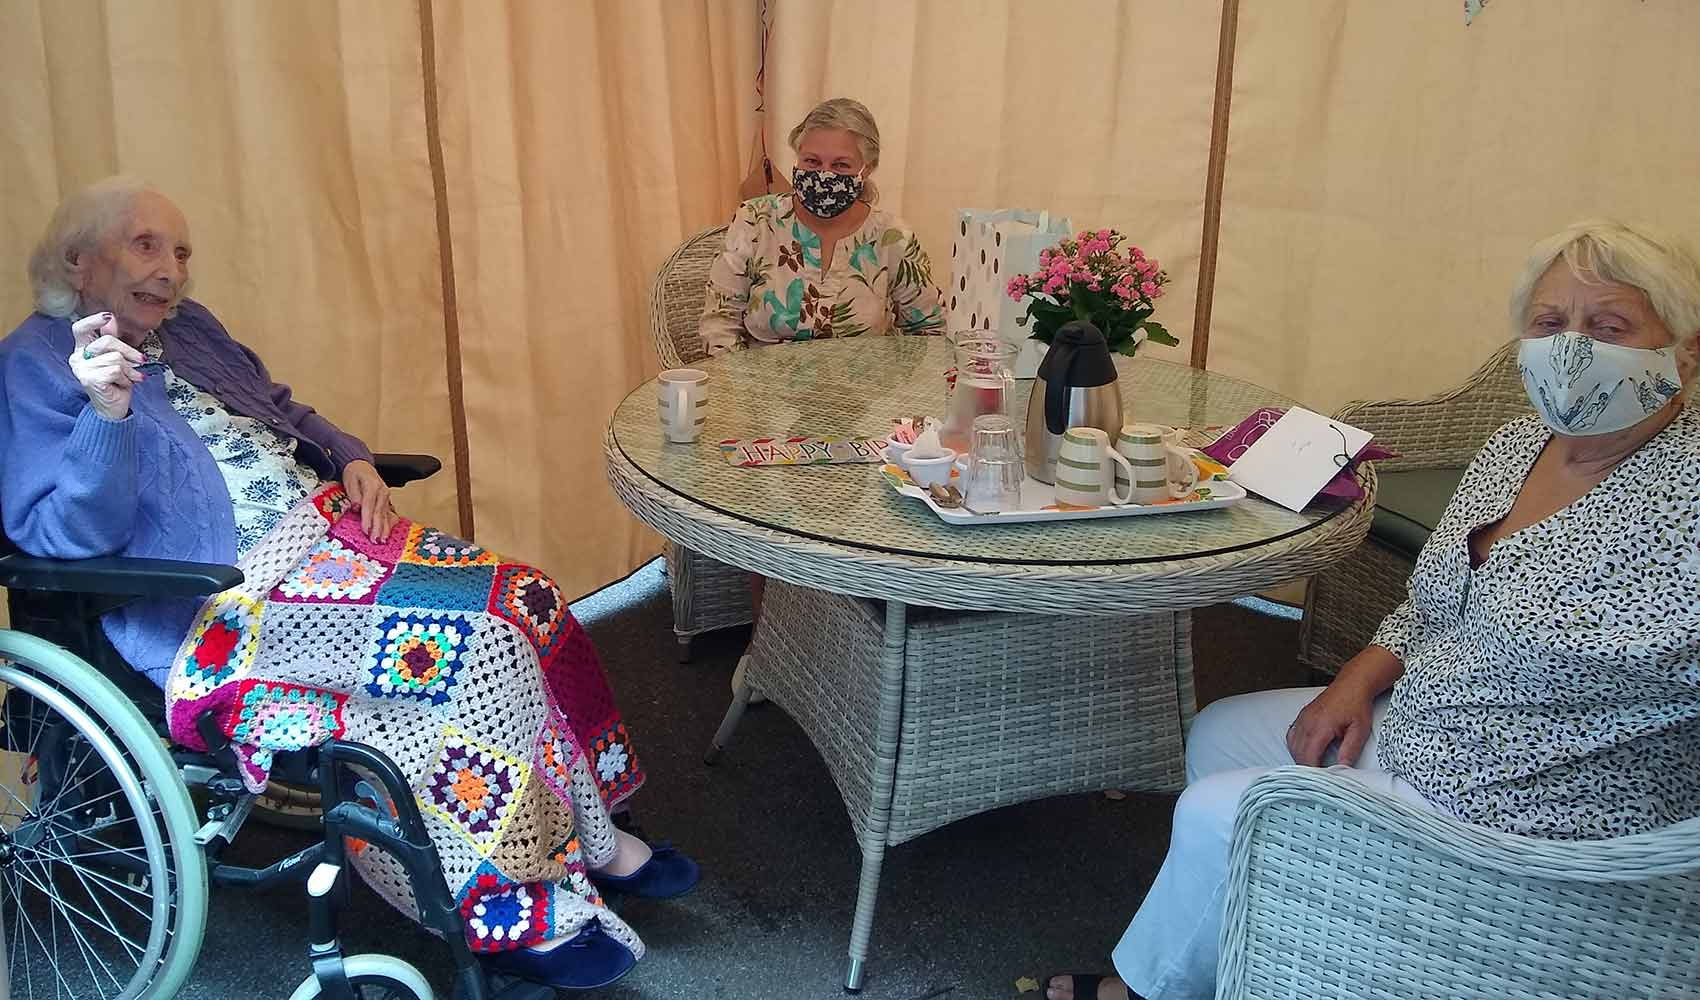 Sheila joined by family to celebrate 101st birthday at Fern Brook Lodge care home